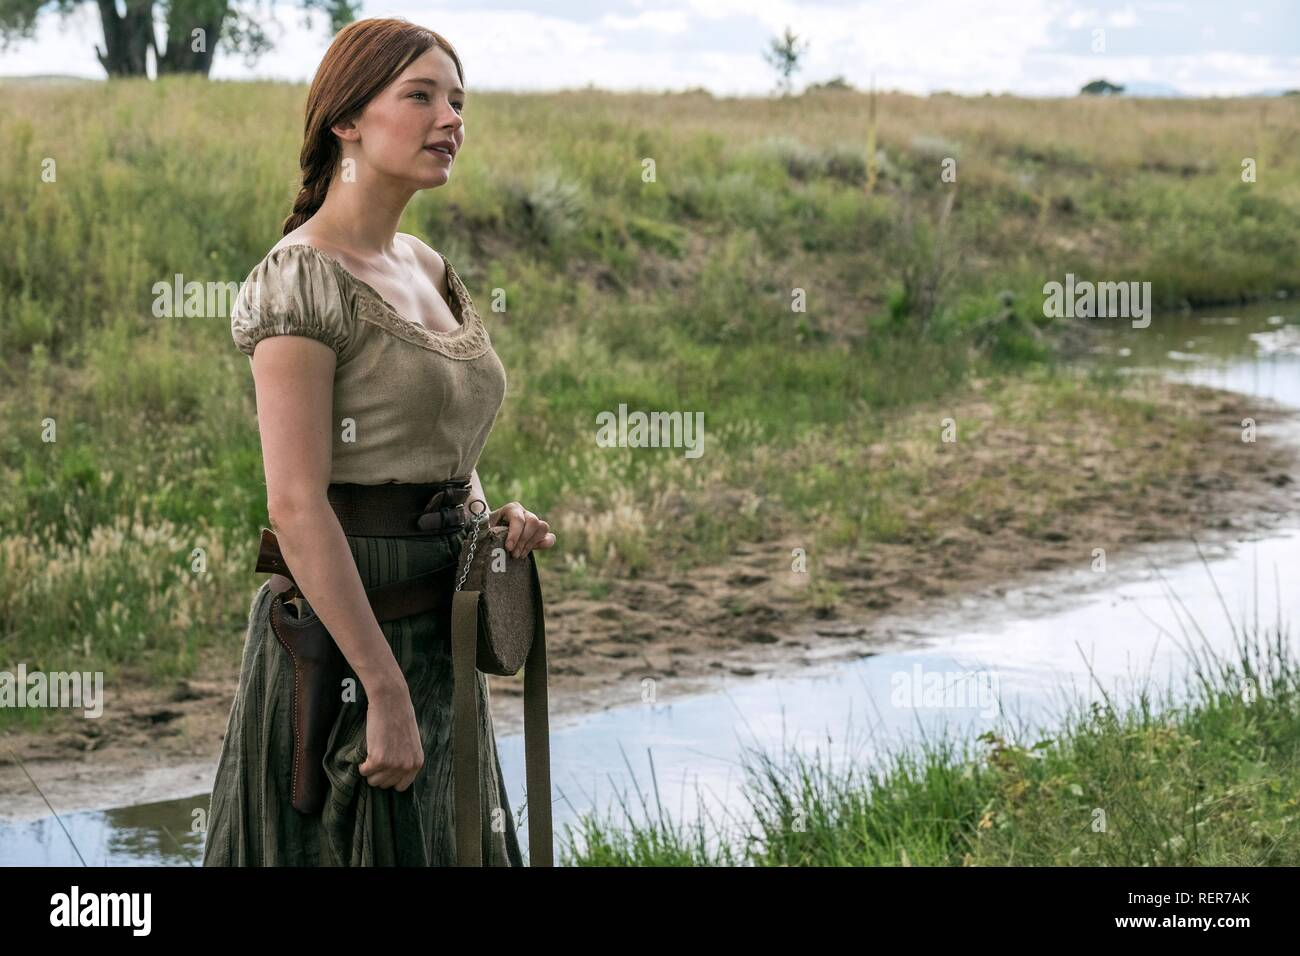 HALEY BENNETT THE MAGNIFICENT SEVEN (2016) - Stock Image